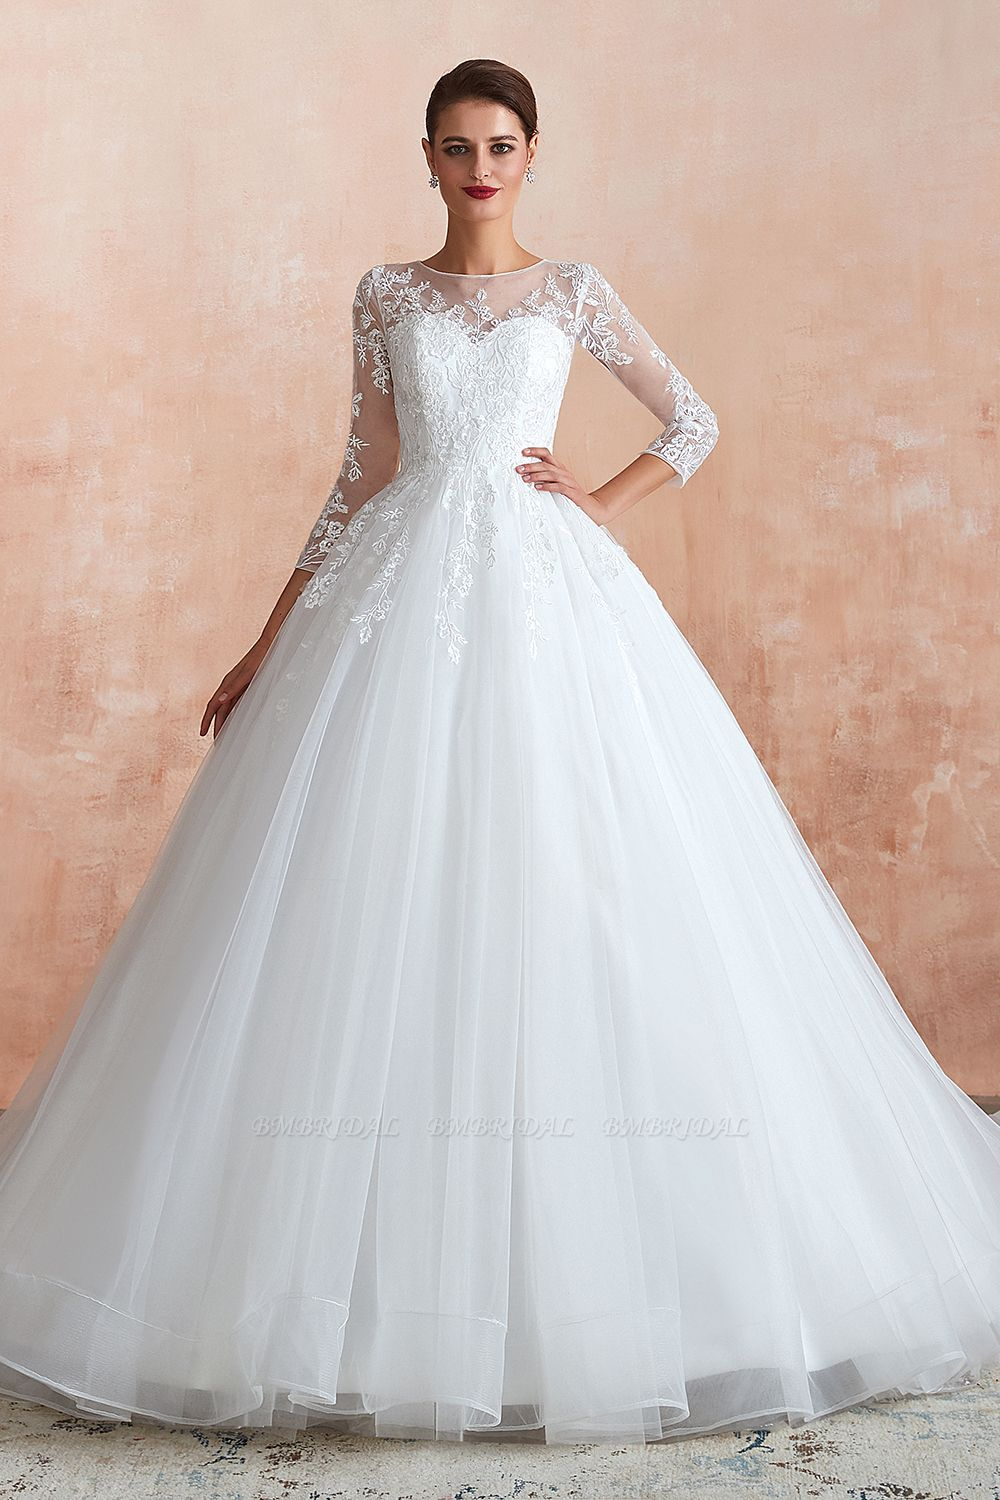 BMbridal Affordable Lace Jewel White Tulle Wedding Dresses with 3/4 Sleeves